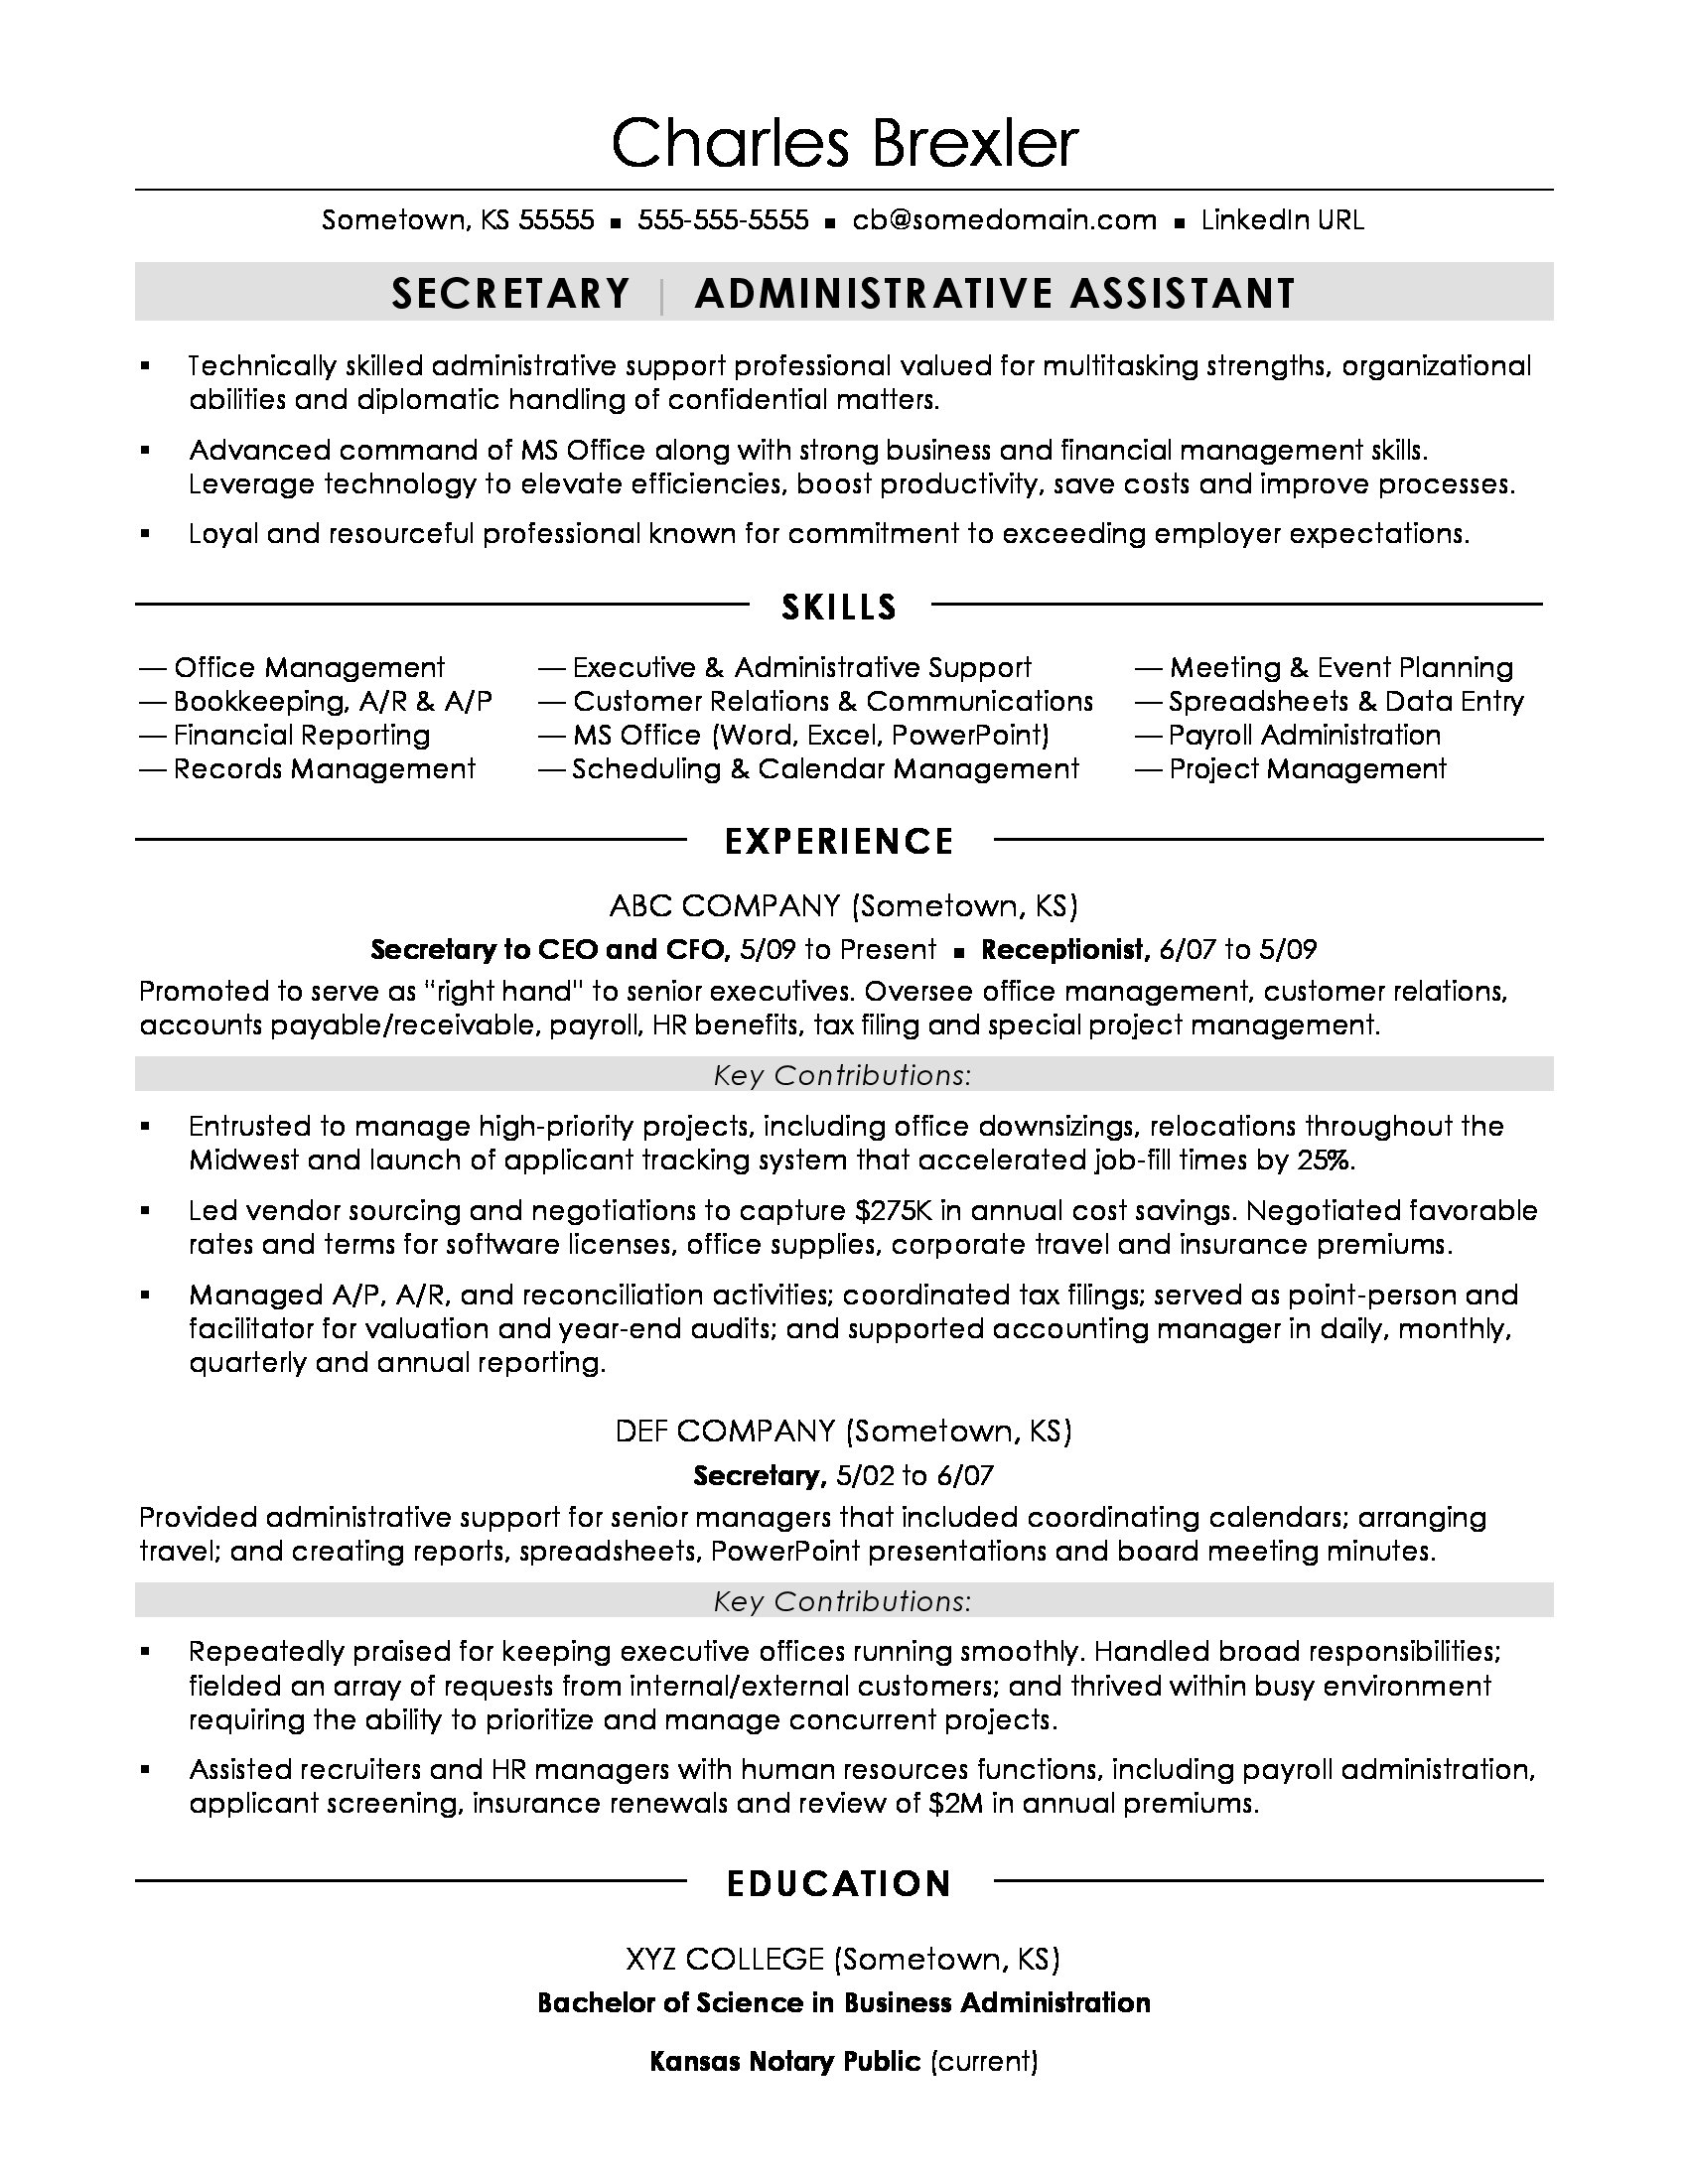 secretary resume sample monster job description of for testing nail technician attractive Resume Job Description Of A Secretary For Resume